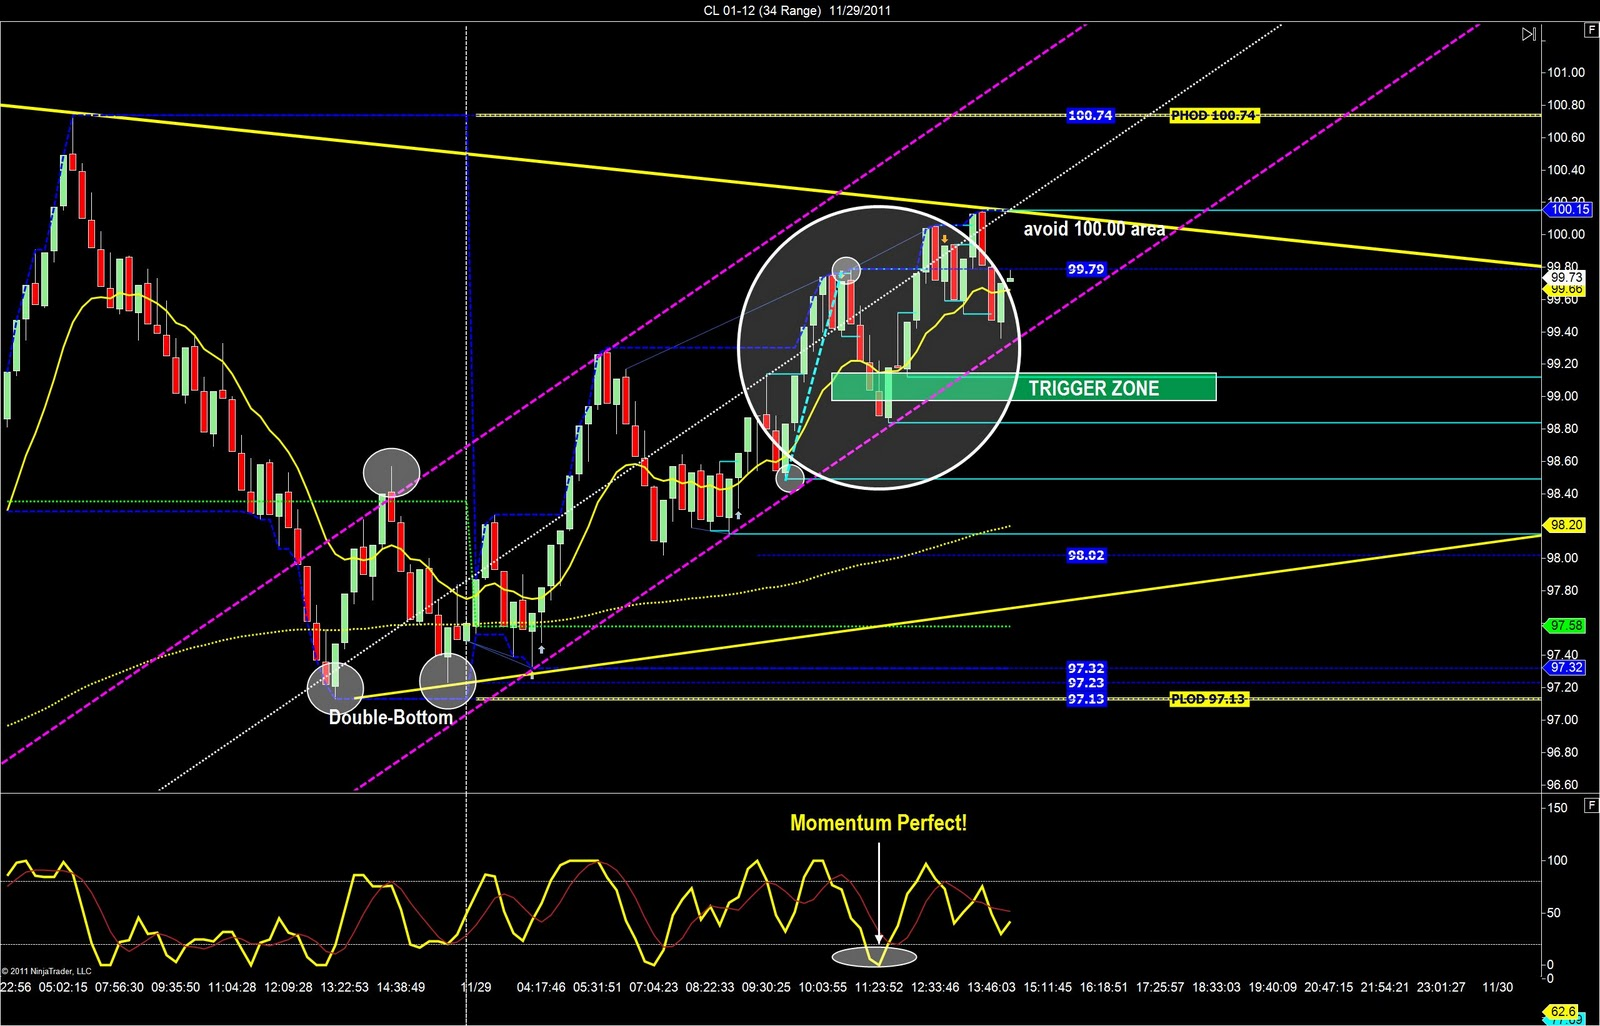 Today We Used A Simple Day Trading Strategy That Uses The Dollar Index Along With Euro Currency Futures And Crude Oil To Hit Our Daily Goal Of